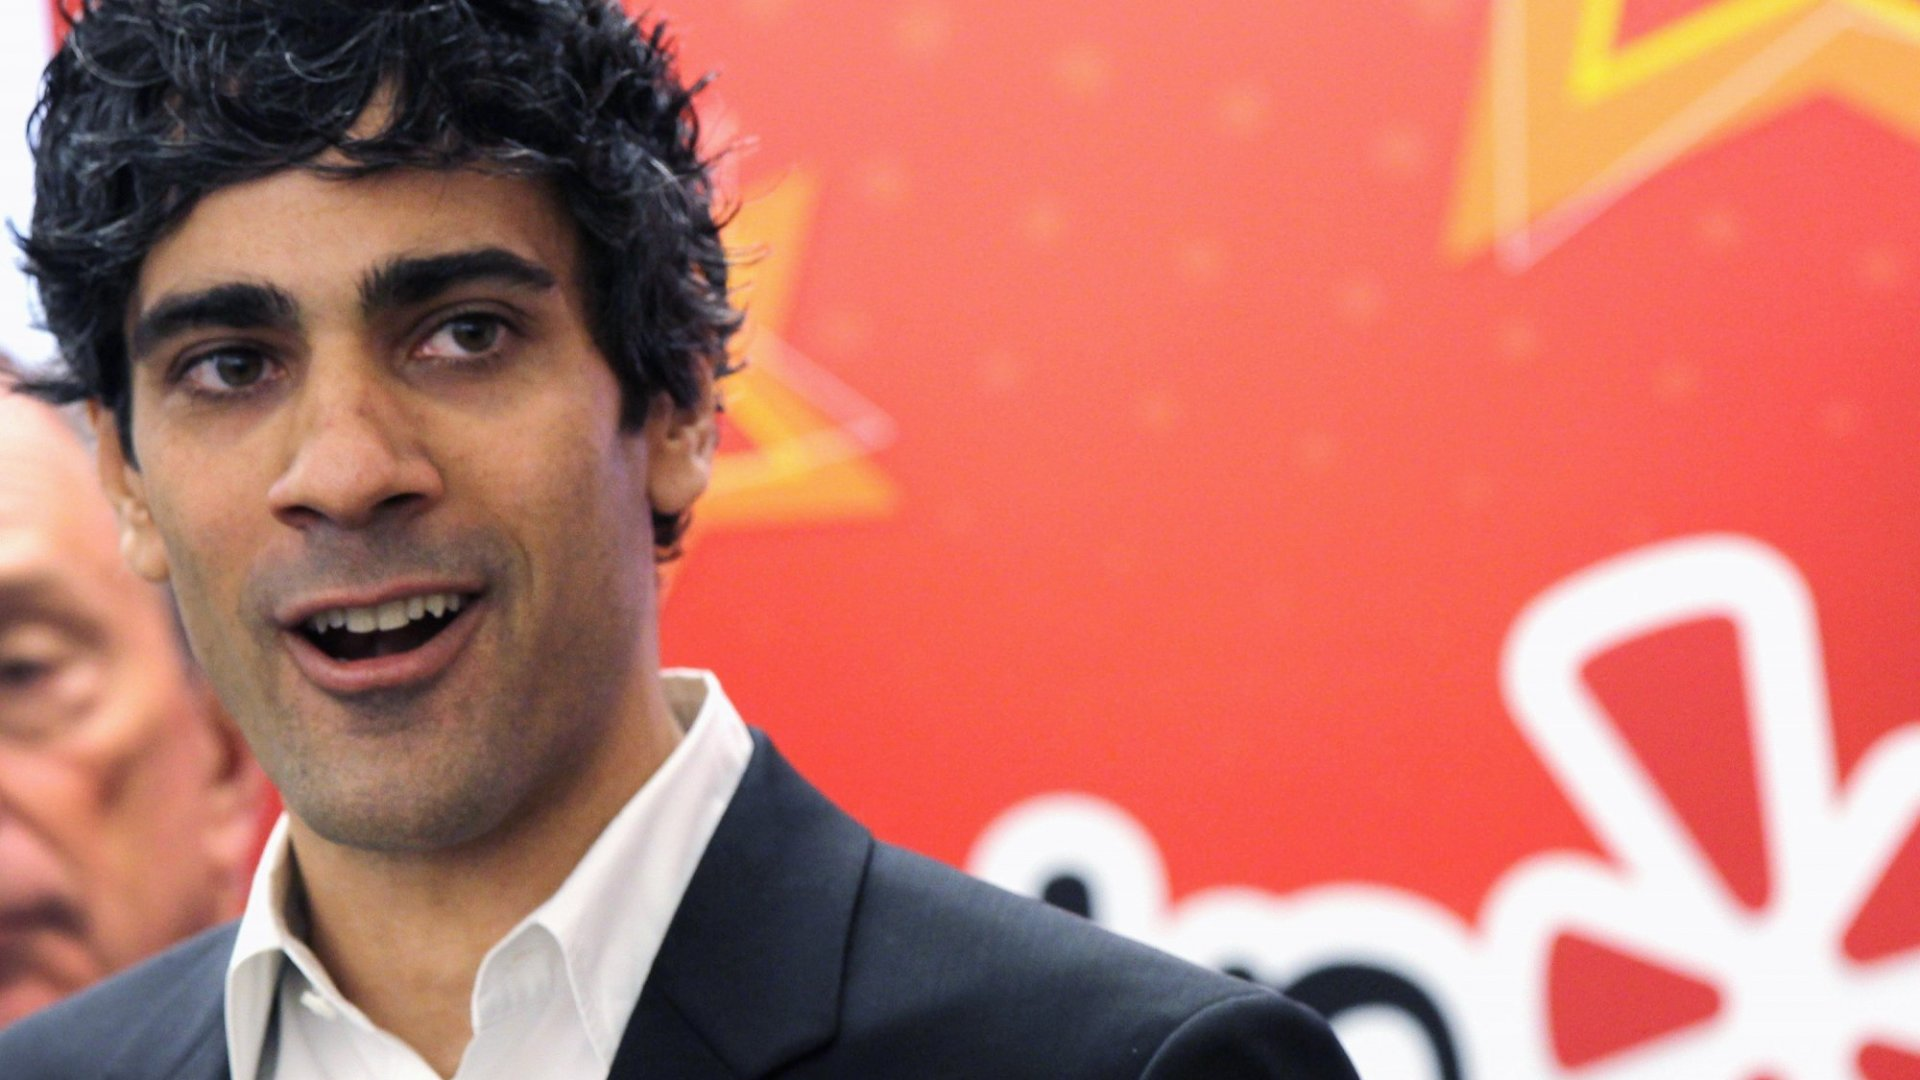 How Yelp and Grubhub Executives Could've Avoided Their Recent, Massive Screw-Up